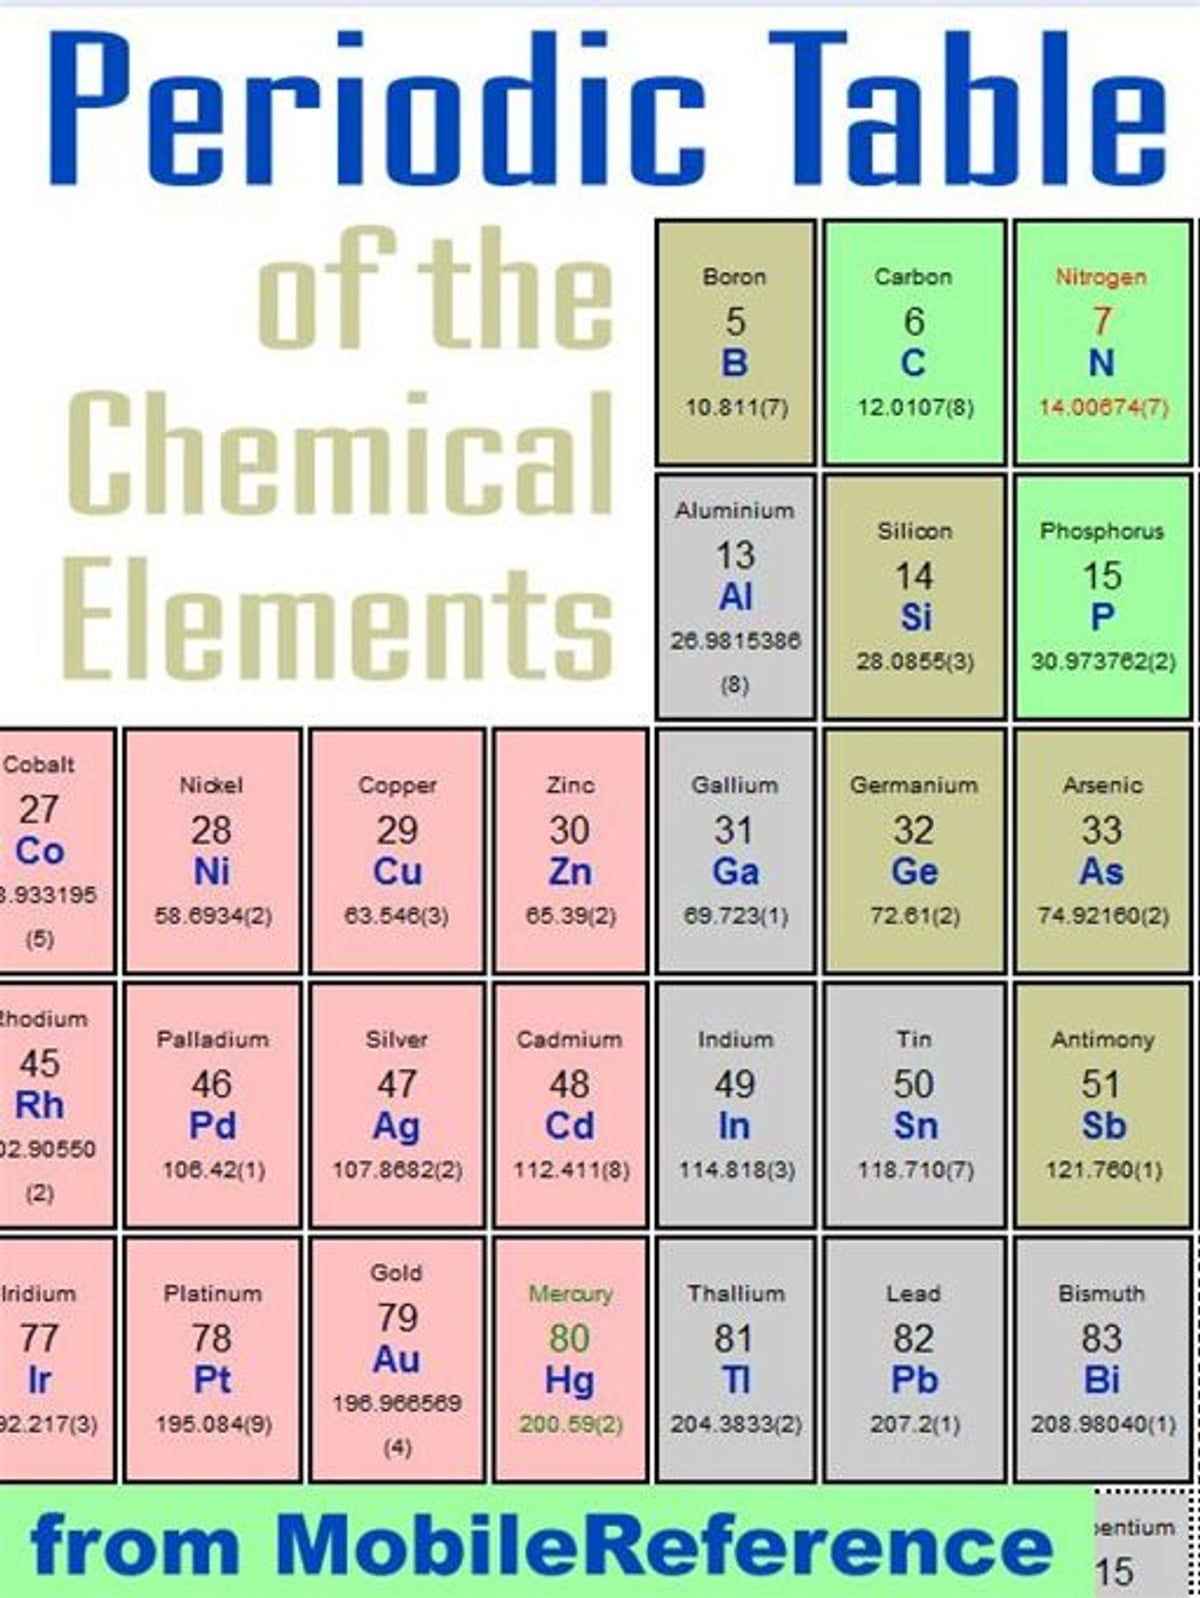 Periodic table of the chemical elements mendeleevs table periodic table of the chemical elements mendeleevs table including tables of melting boiling points density electronegativity electron affinity gamestrikefo Gallery